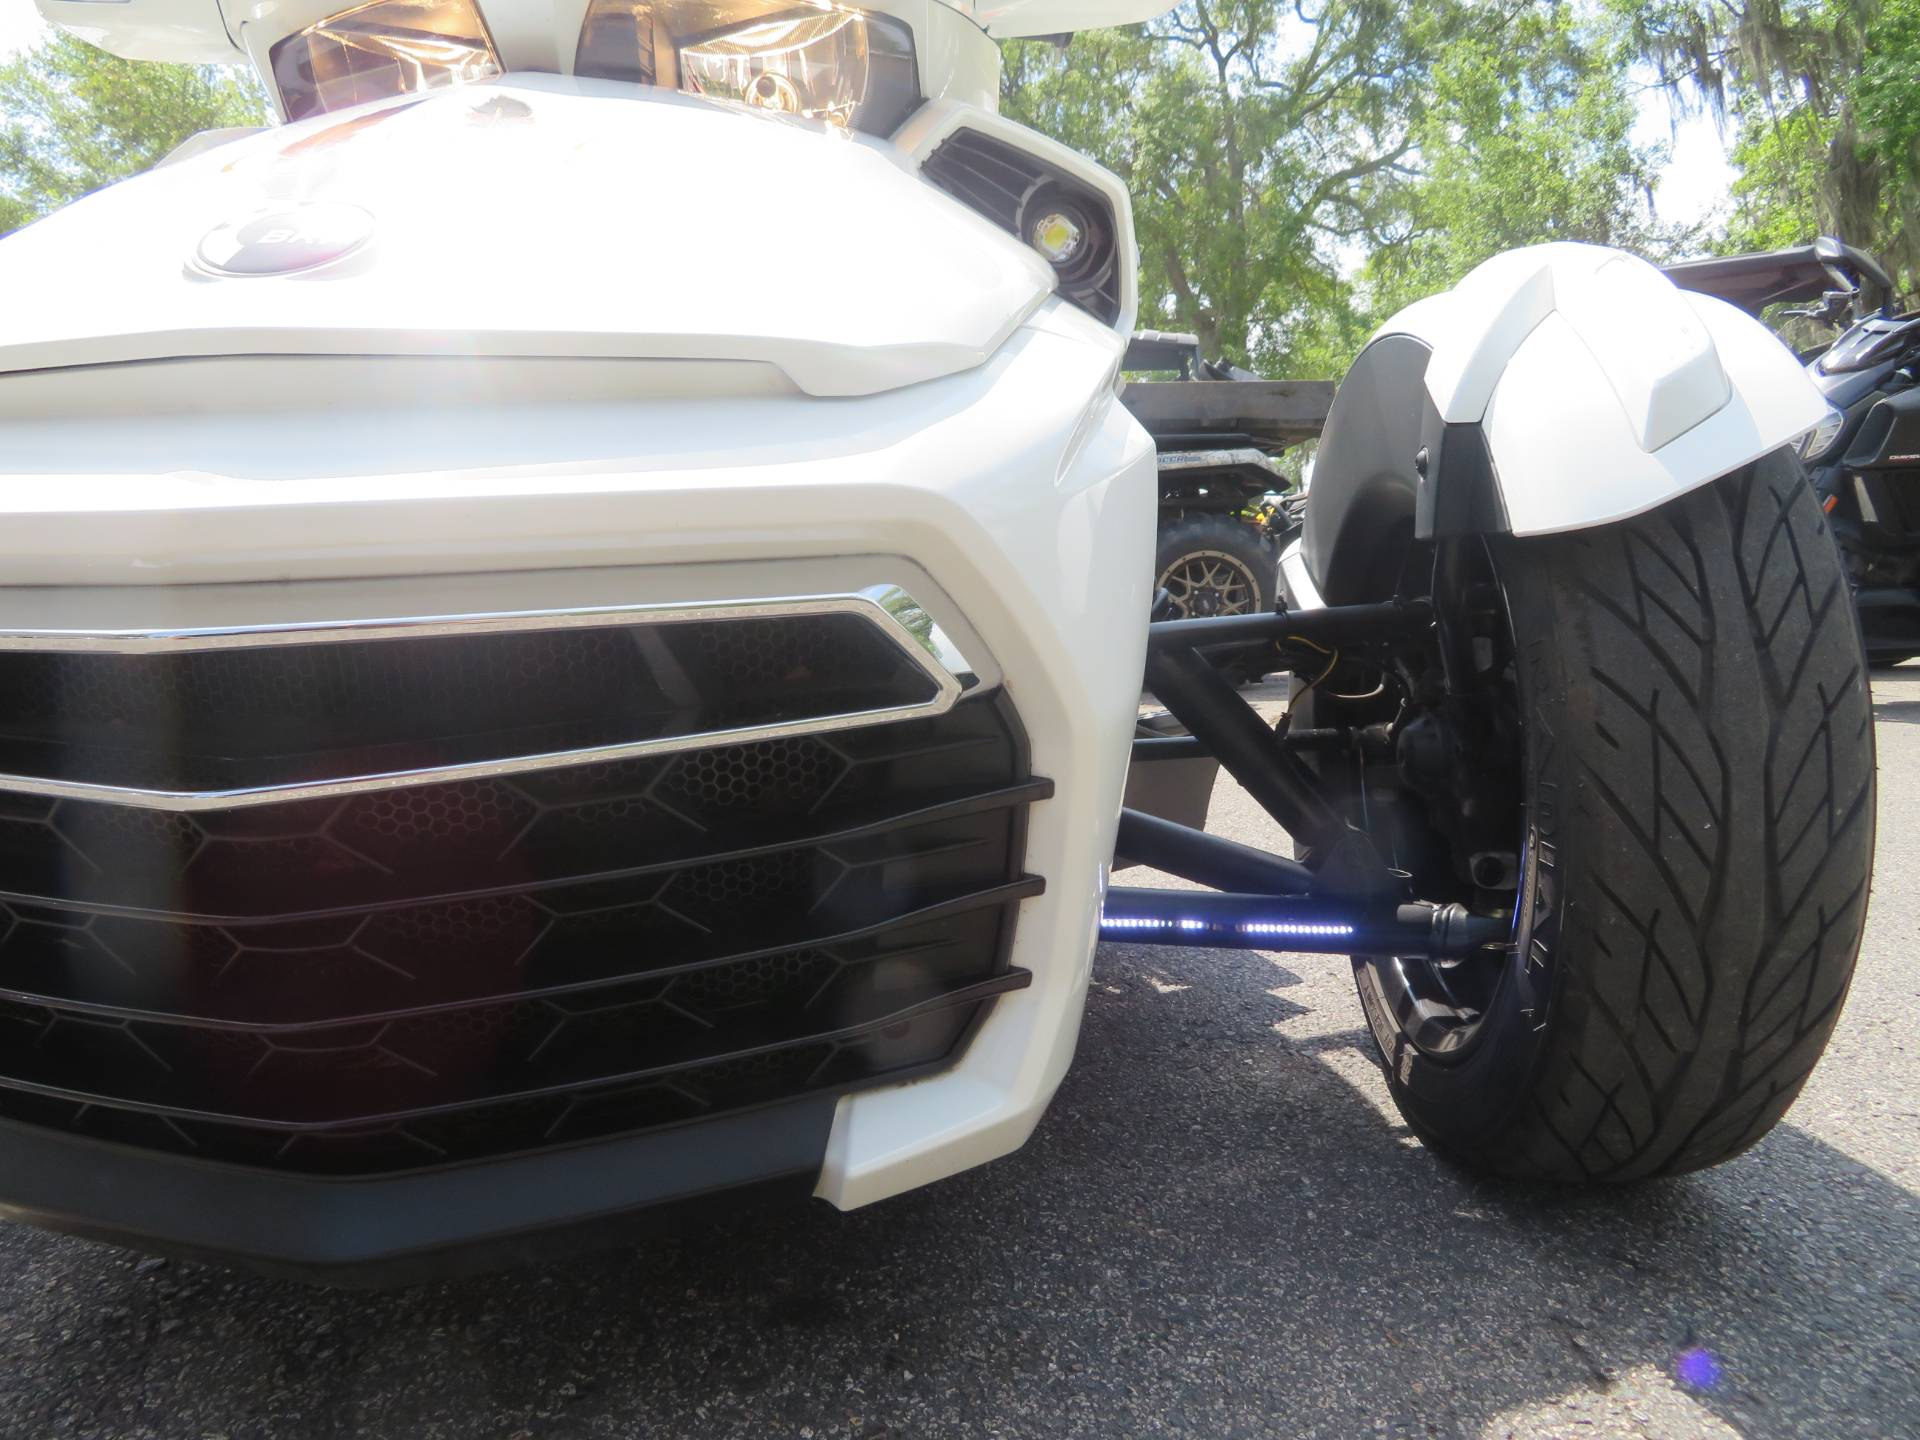 2016 Can-Am Spyder F3 Limited in Sanford, Florida - Photo 16